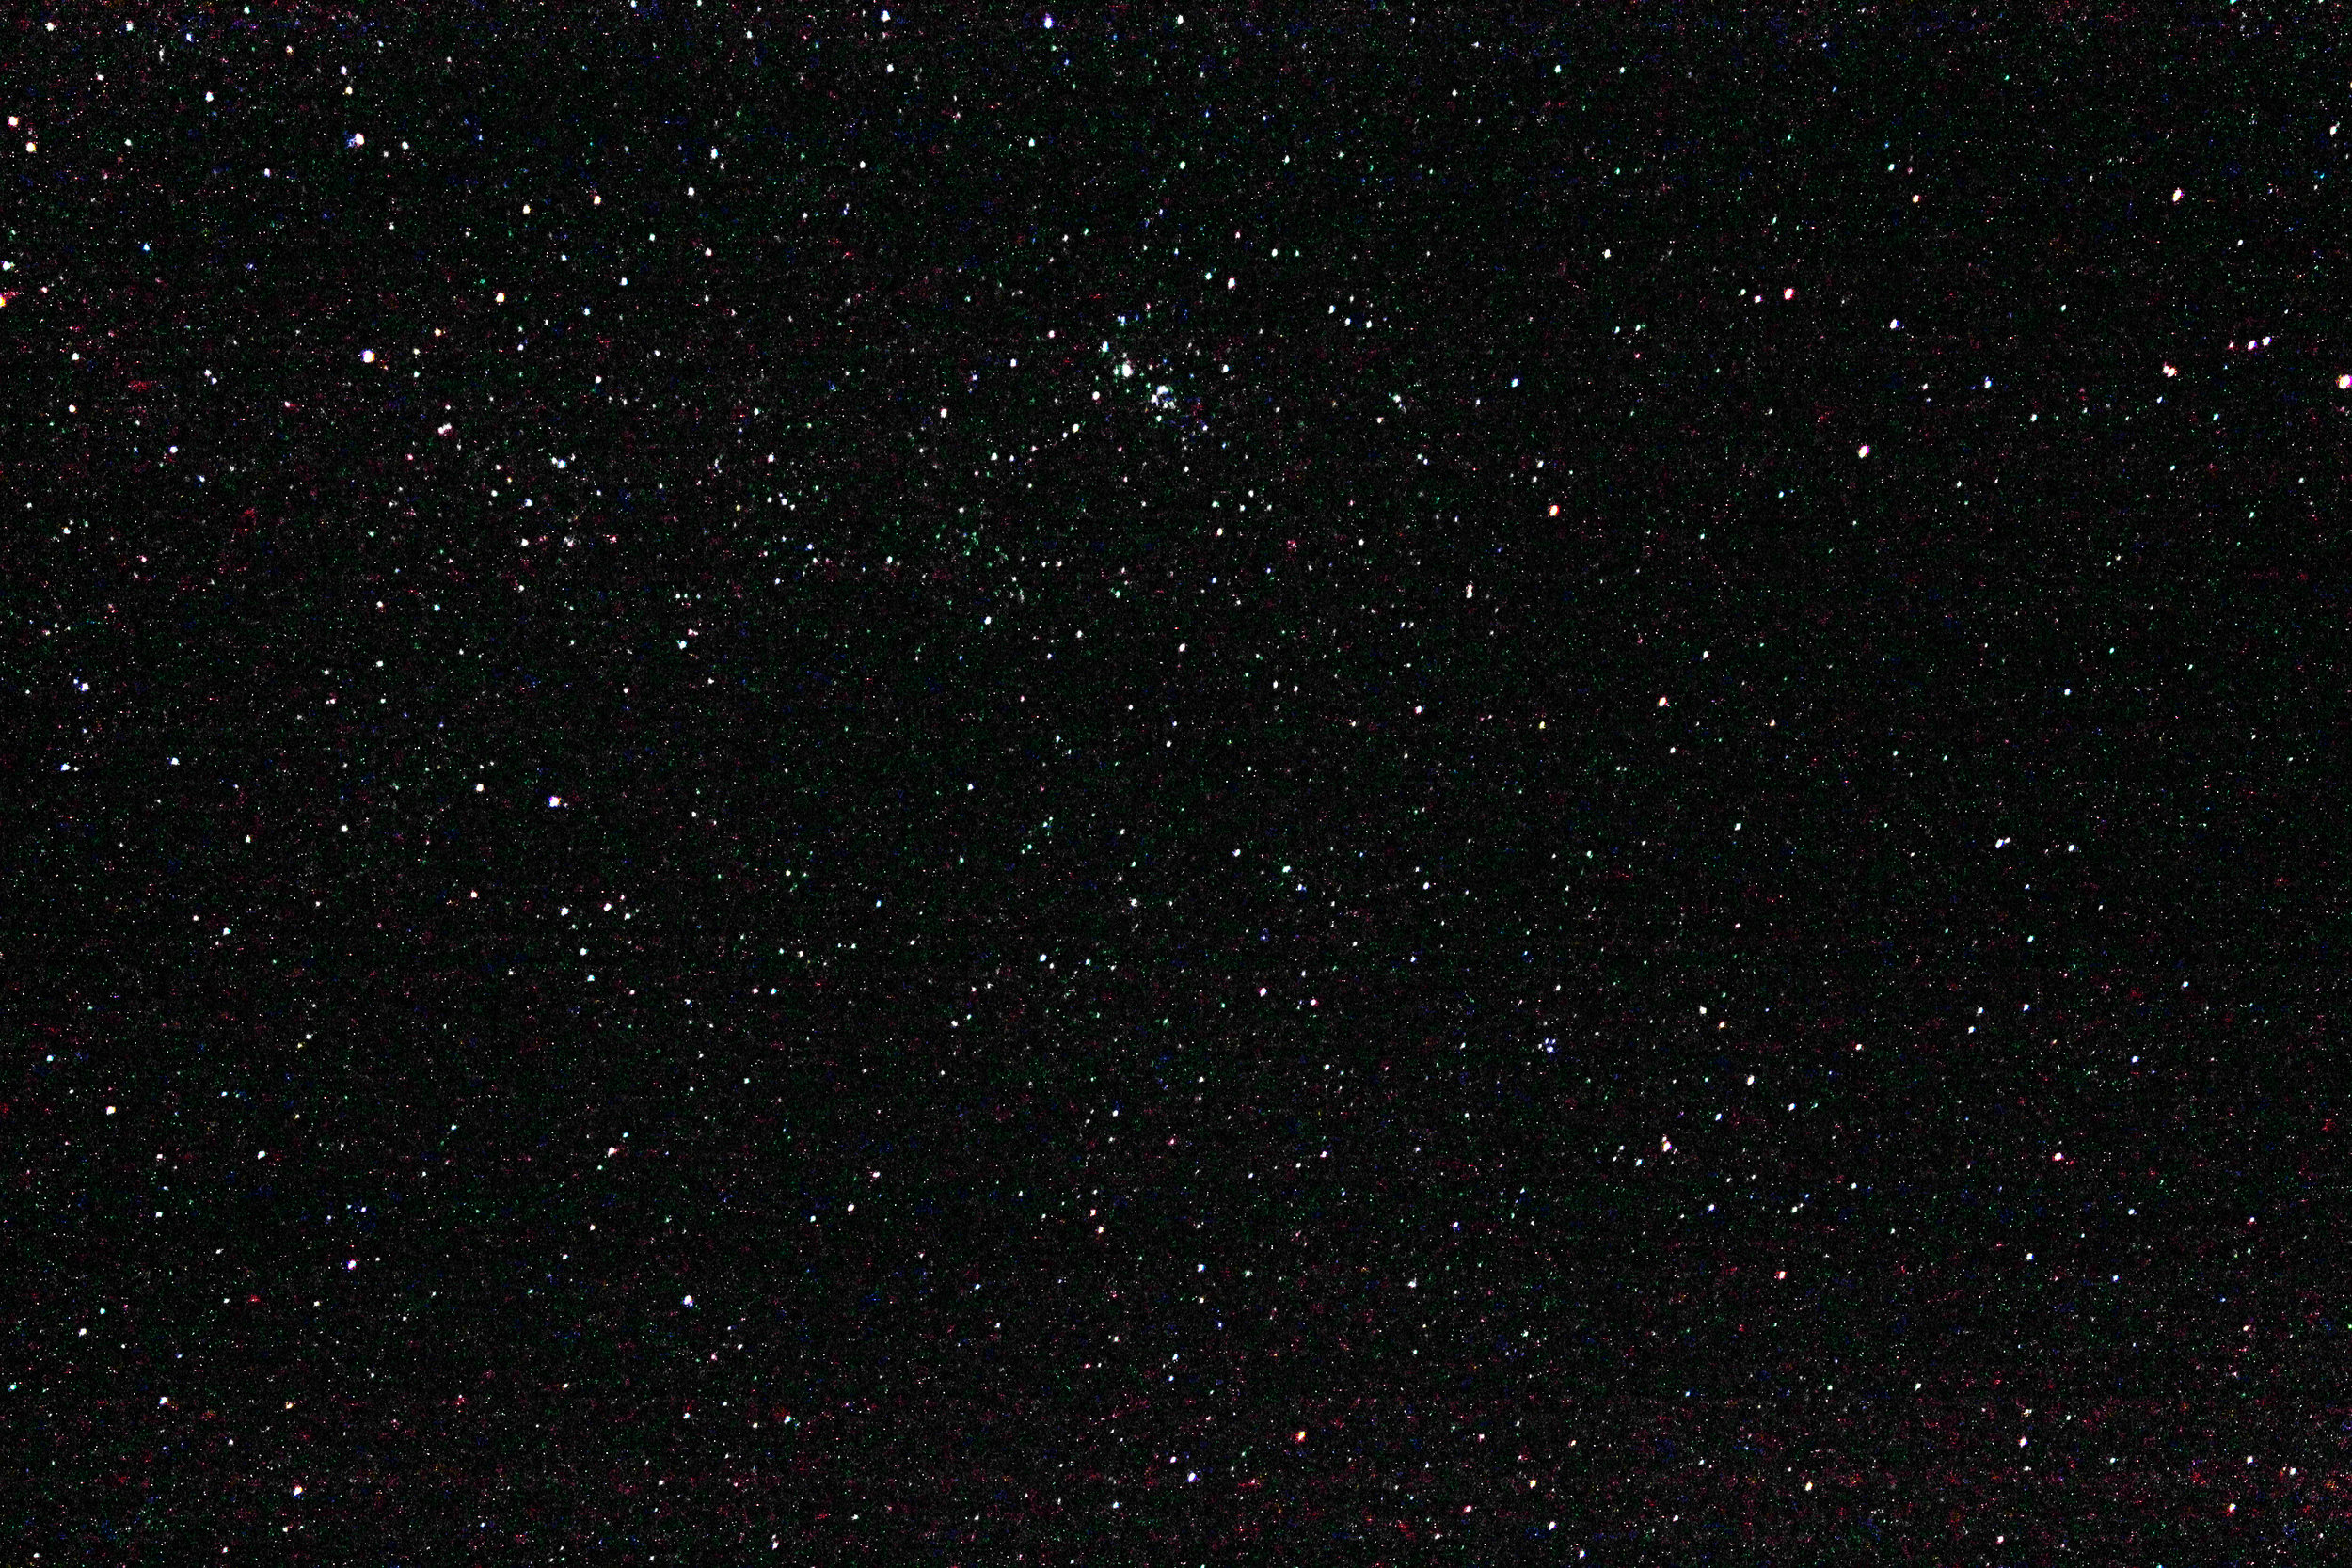 Stars seen from 9300 feet on Mauna Kea, Hawaii 2013